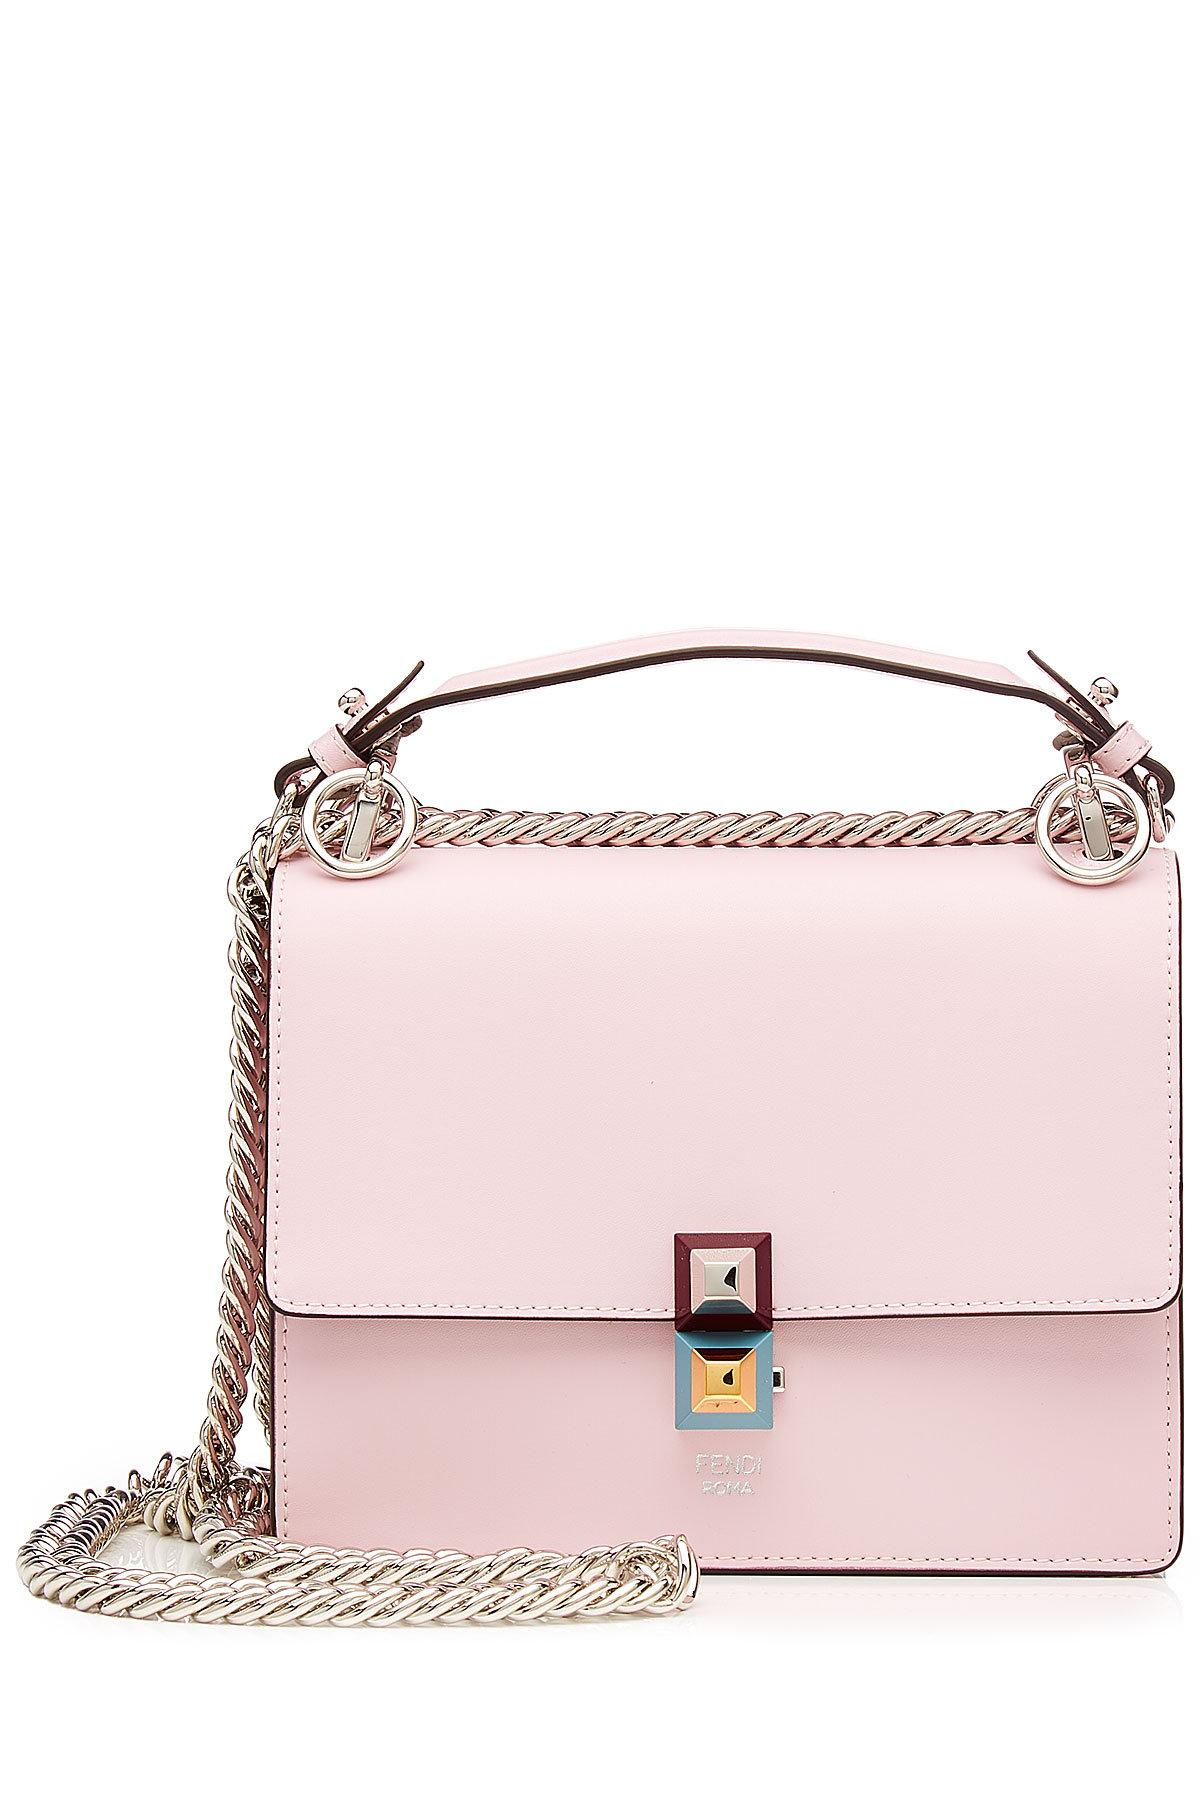 VIDA Statement Bag - Kay Duncan Fleur Cr Bag by VIDA NWe4DXH310